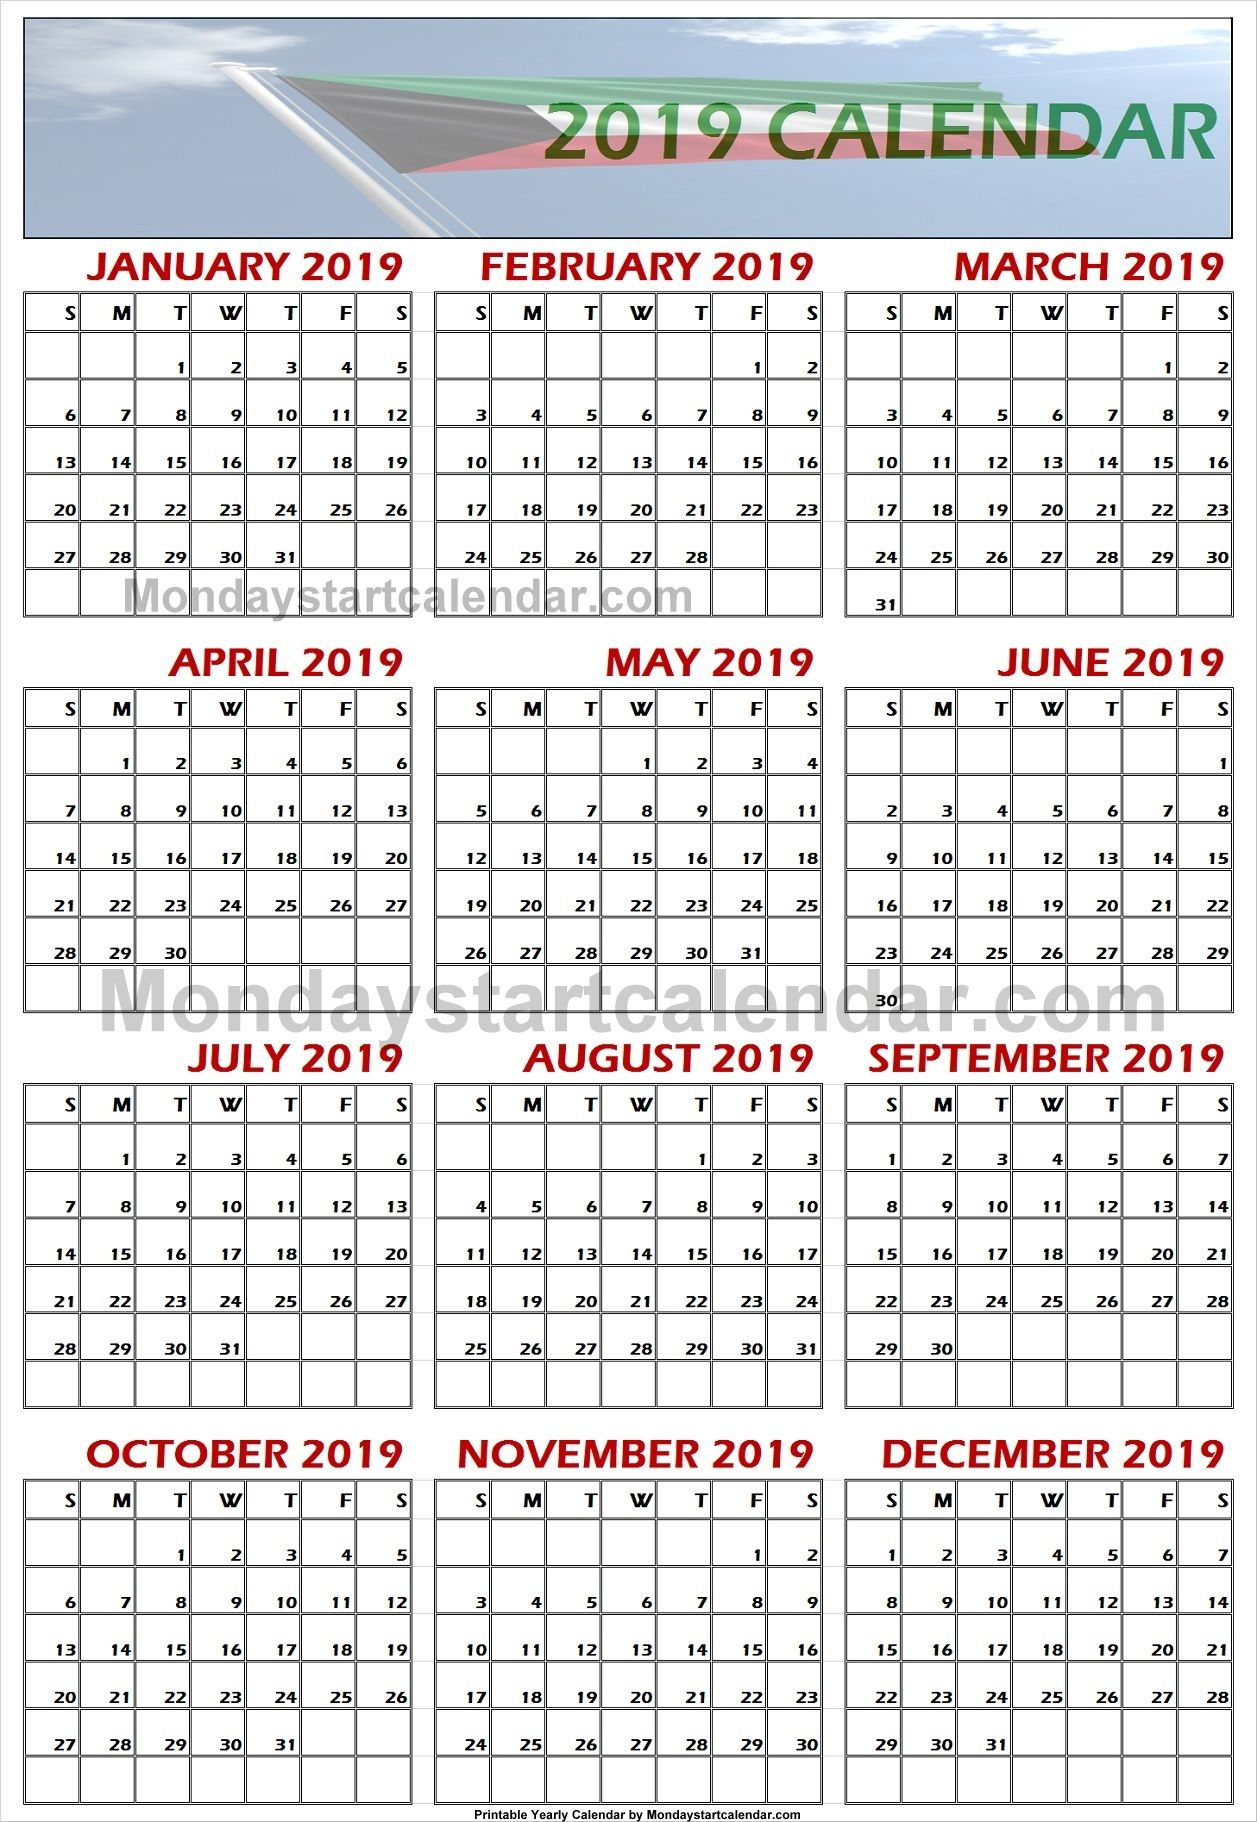 2019 Kuwait Calendar | School Holiday Calendar, Holiday intended for Kuwait 2020 Calendar